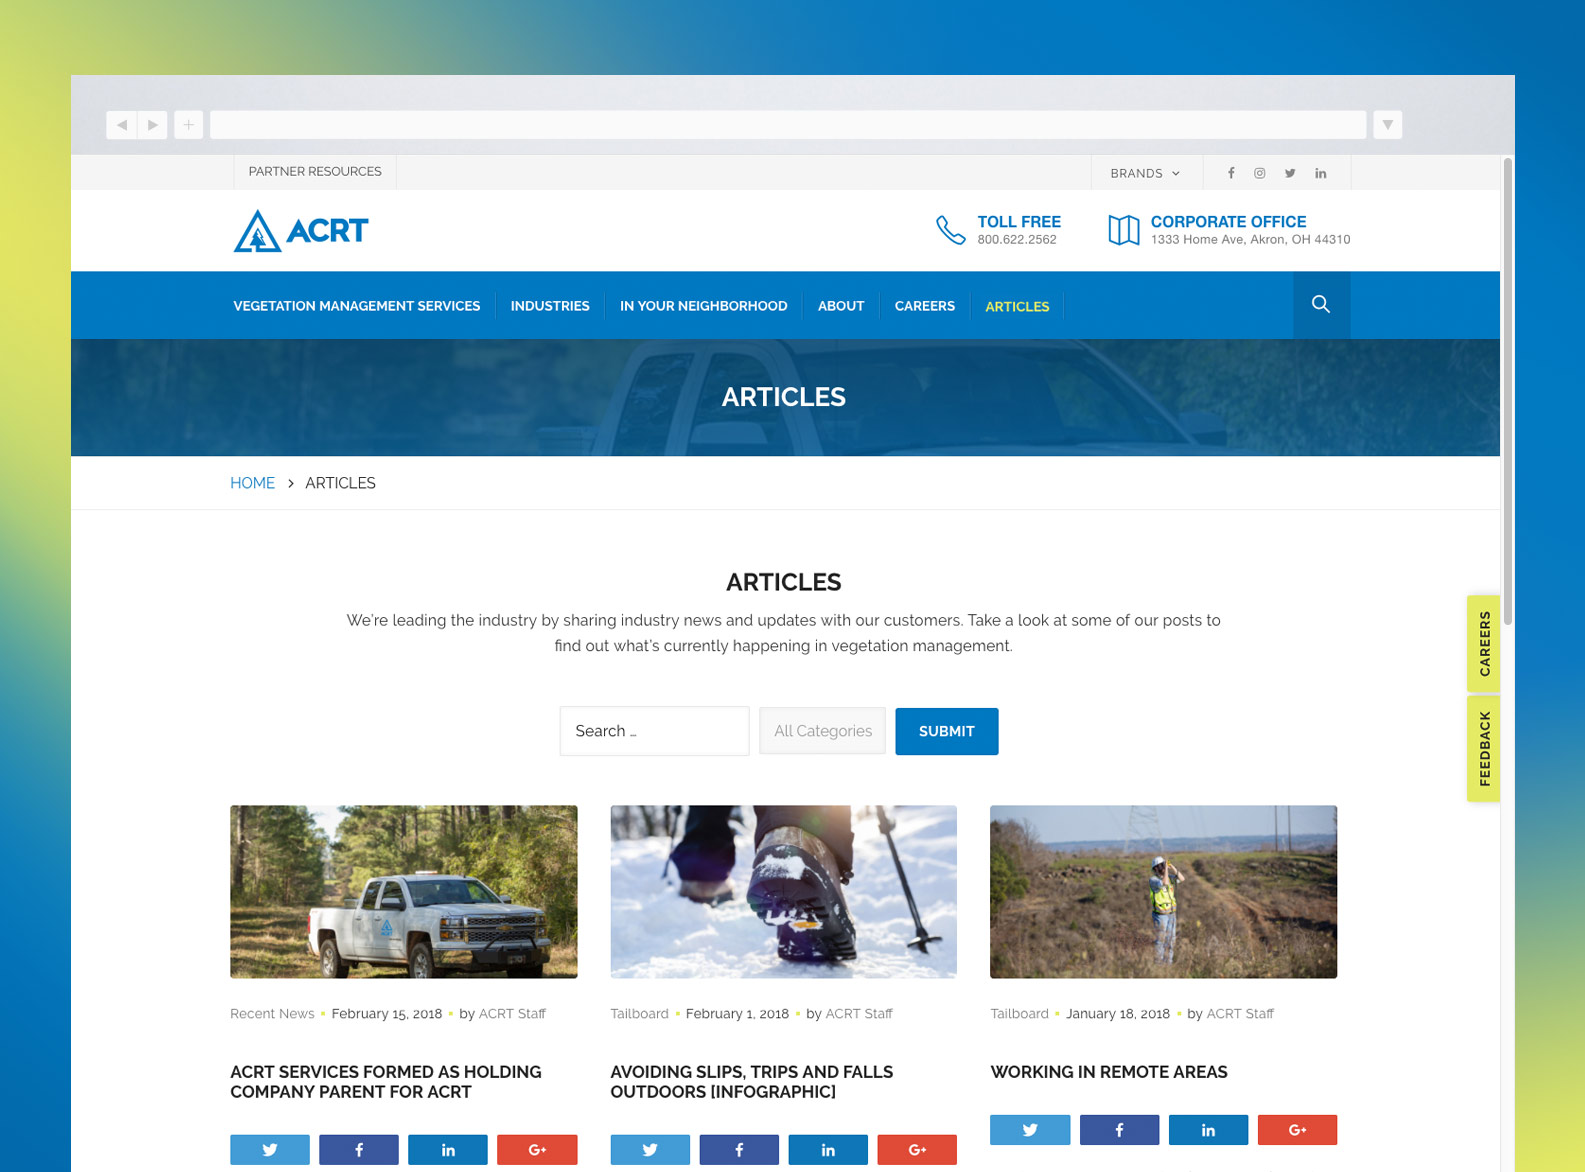 ACRT Articles Page